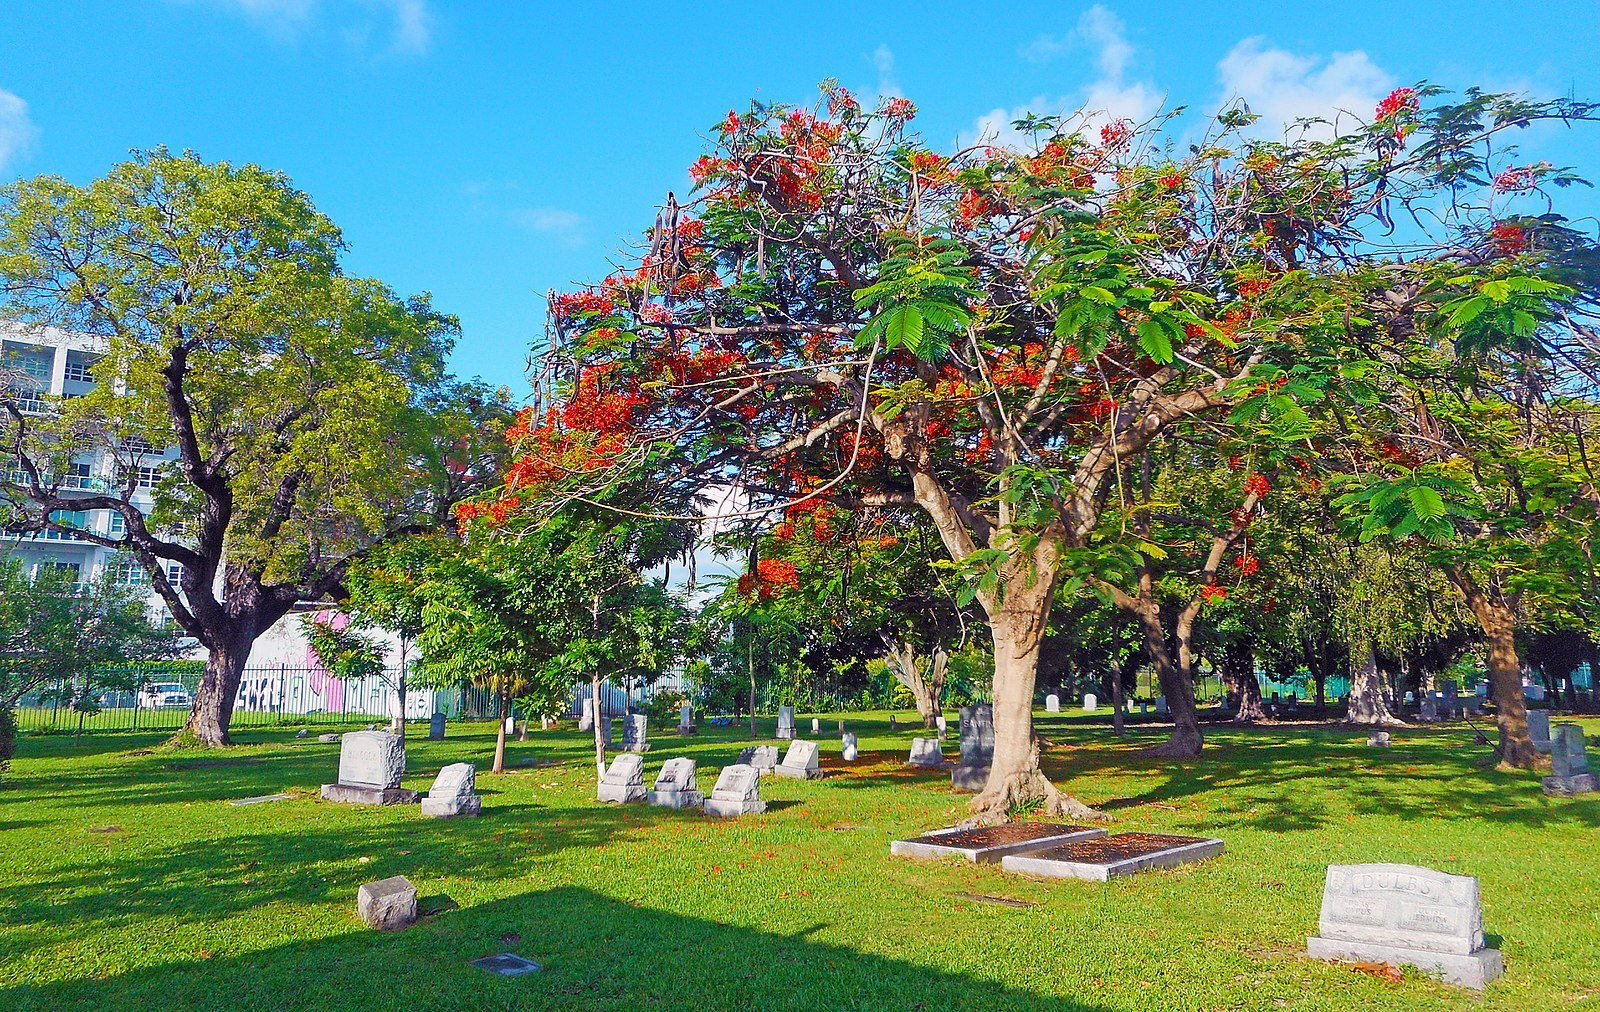 Miami City Cemetery is notable for its graves as well as its landscaping, which is comparative to a botanical garden. Wikimedia Commons.